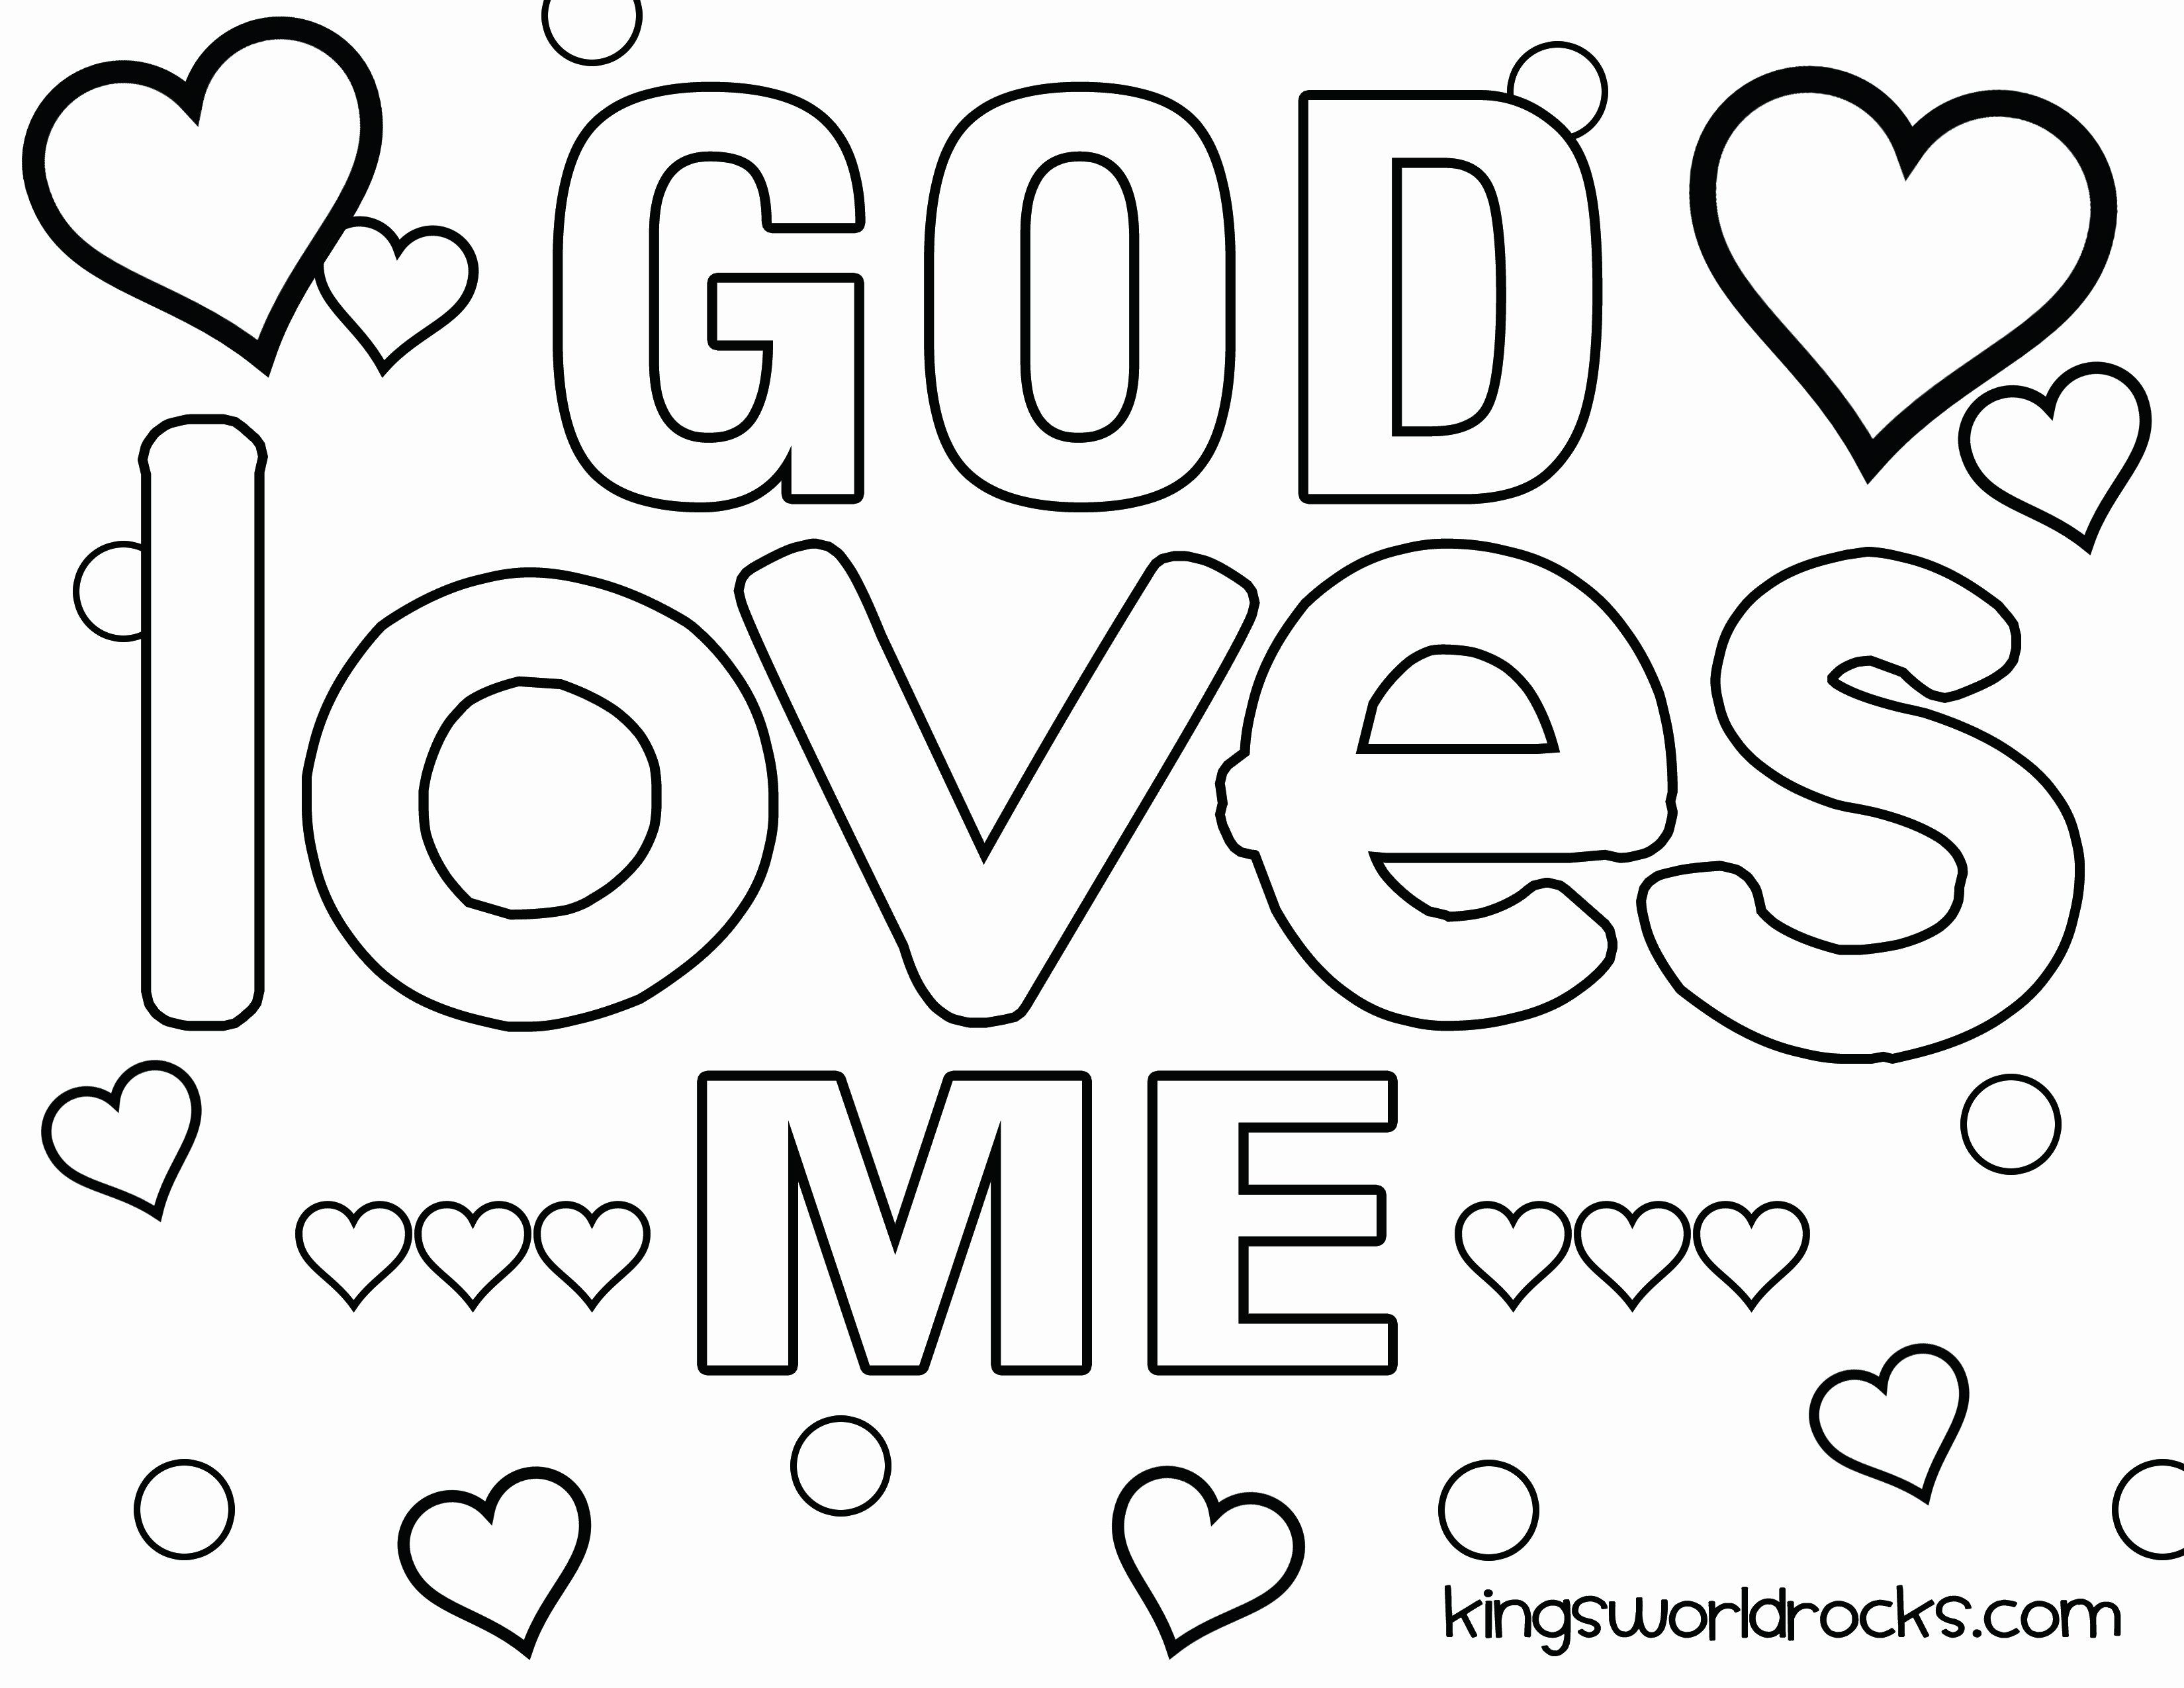 God Loves Me Coloring Page Inspirational 959 Best Coloring Pages